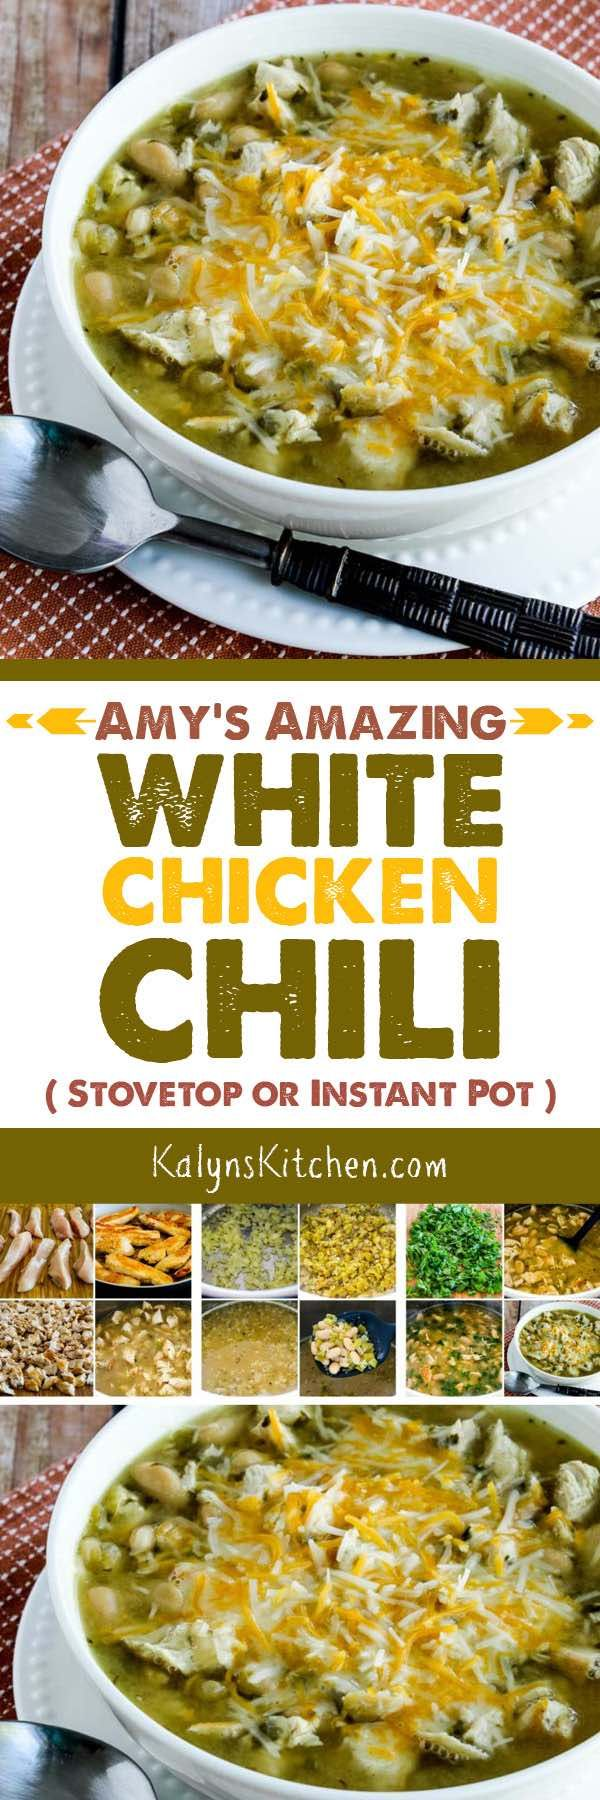 Amy's Amazing White Chicken Chili is so delicious whether you make it on the Stovetop or in the Instant Pot, and you can also use leftover turkey in this delicious chili if you're lucky enough to have some! [found on KalynsKitchen.com] #WhiteChickenChili #InstantPotWhiteChickenChili #StovetopWhiteChickenChili